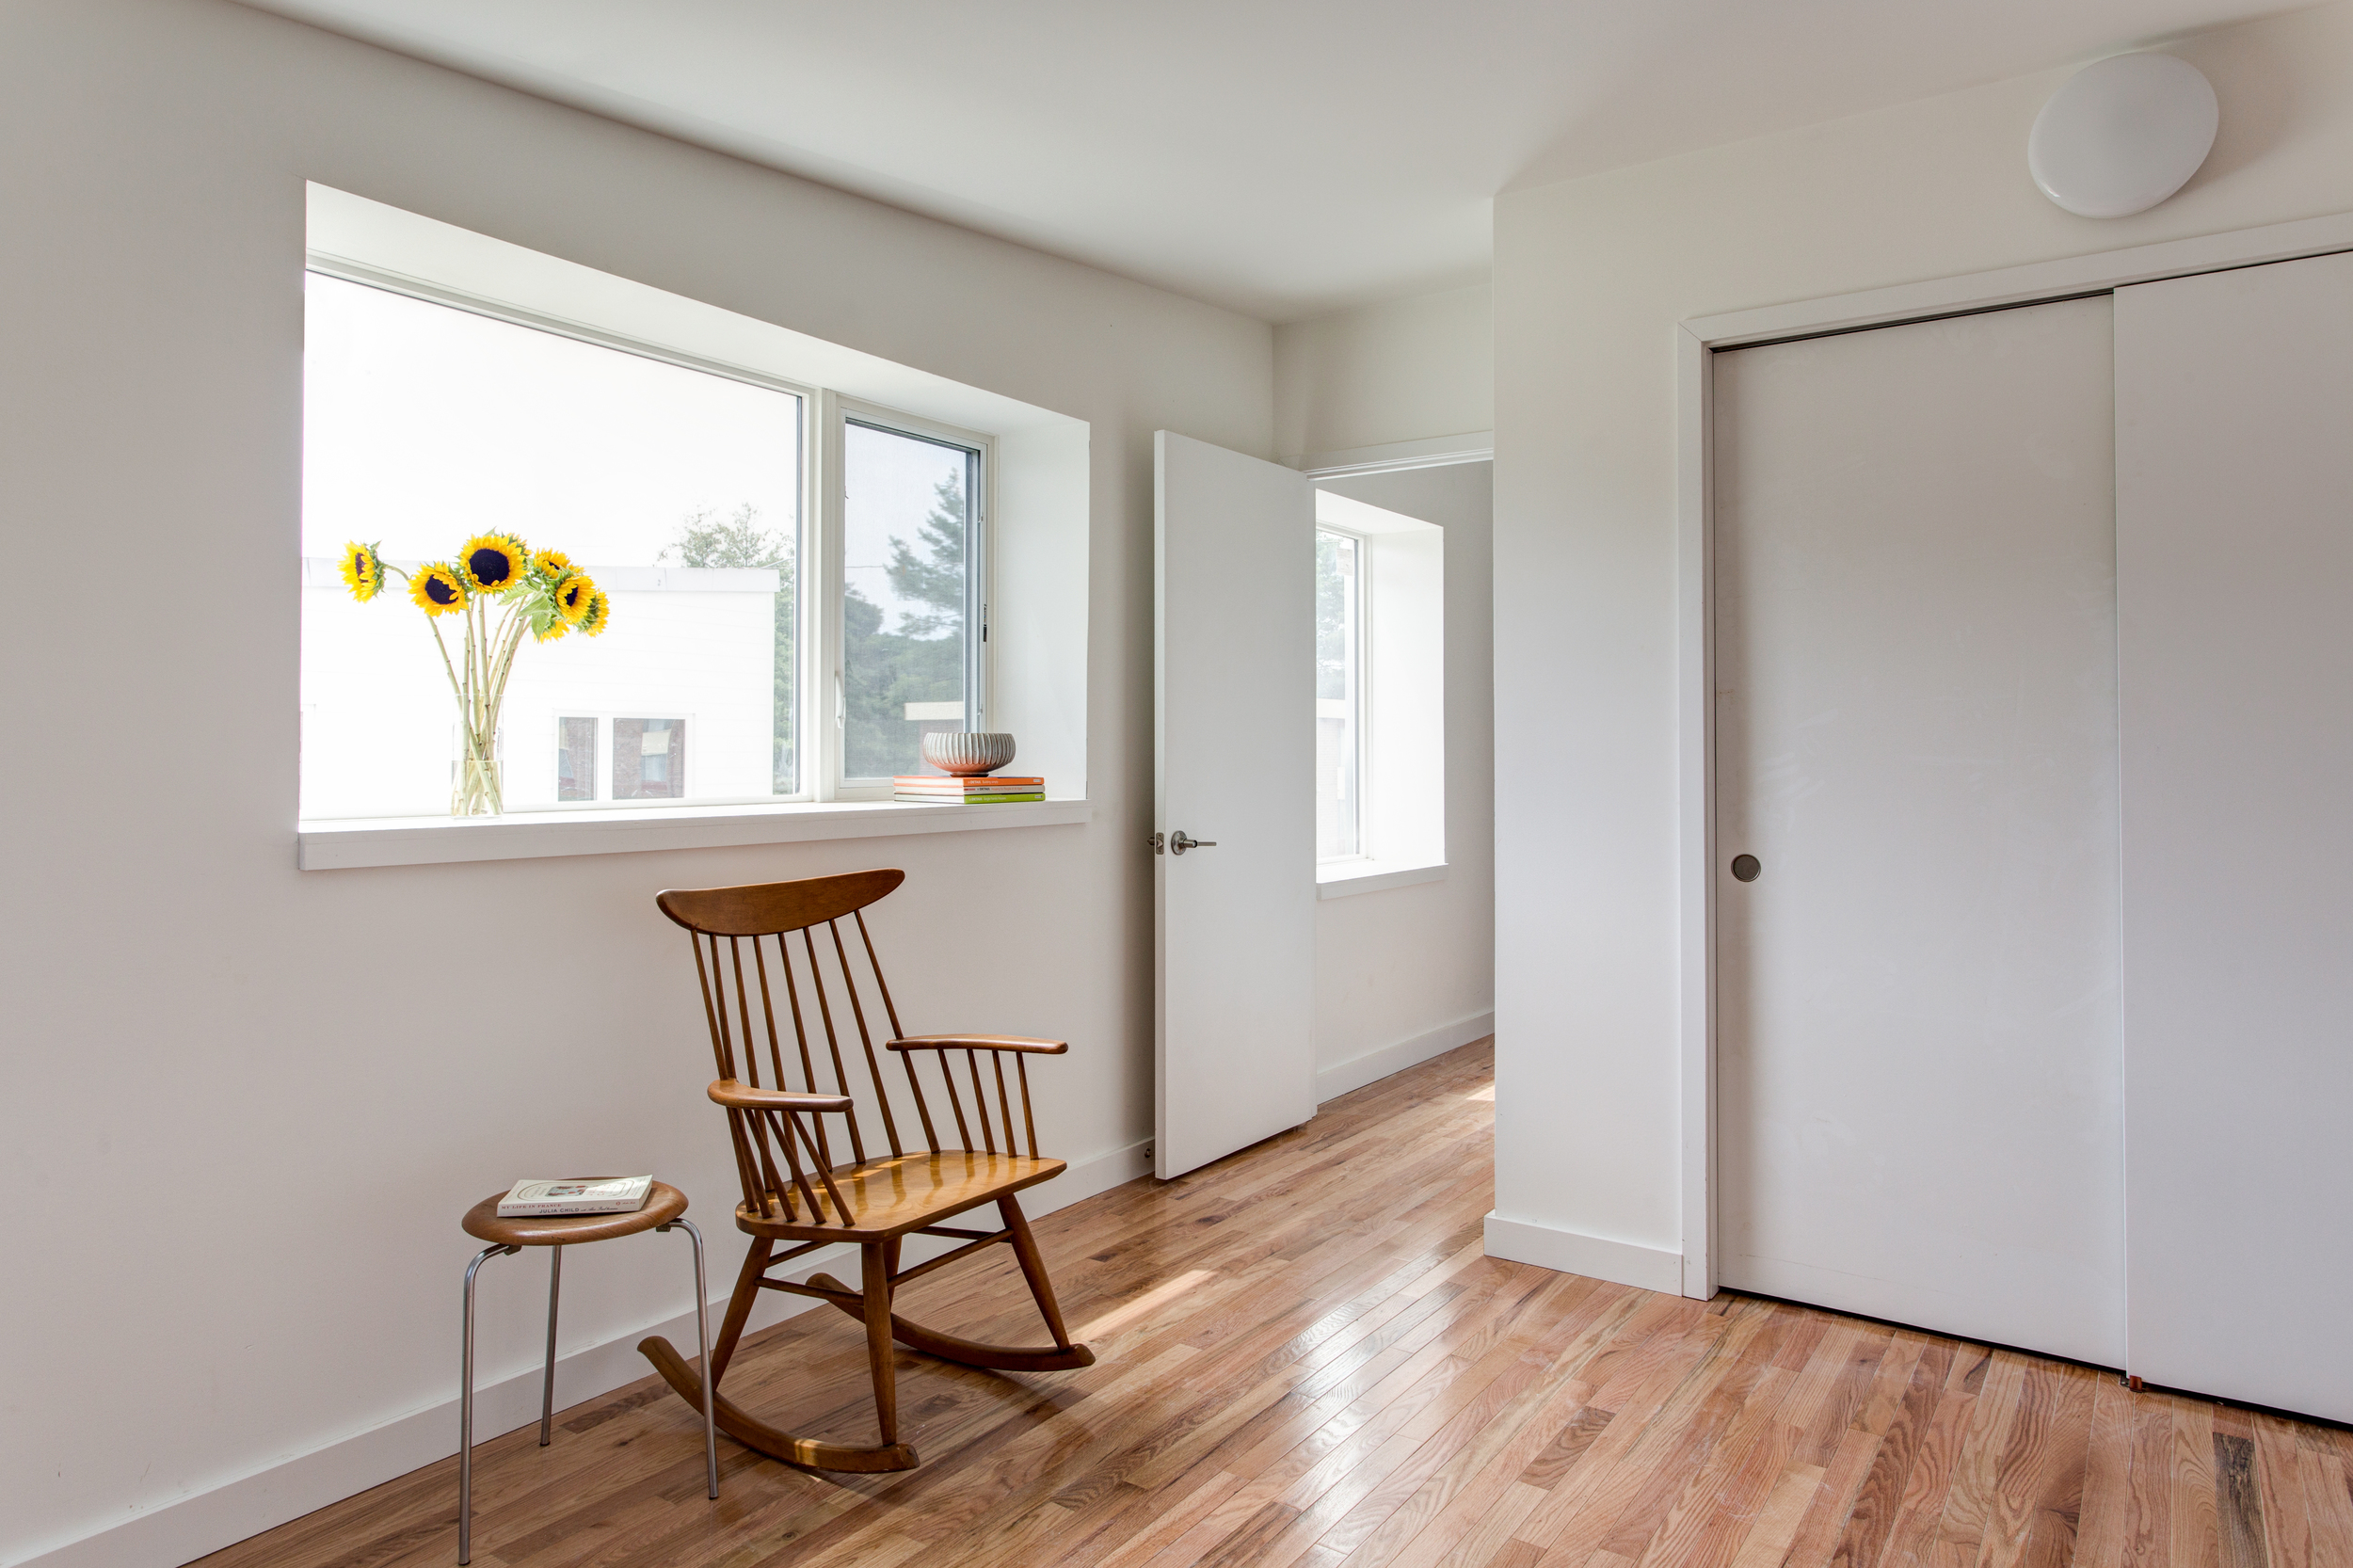 ecoMOD South - Passive House Unit - Bedroom Photo Credit: Andrea Hubbell, Charlottesville, VA